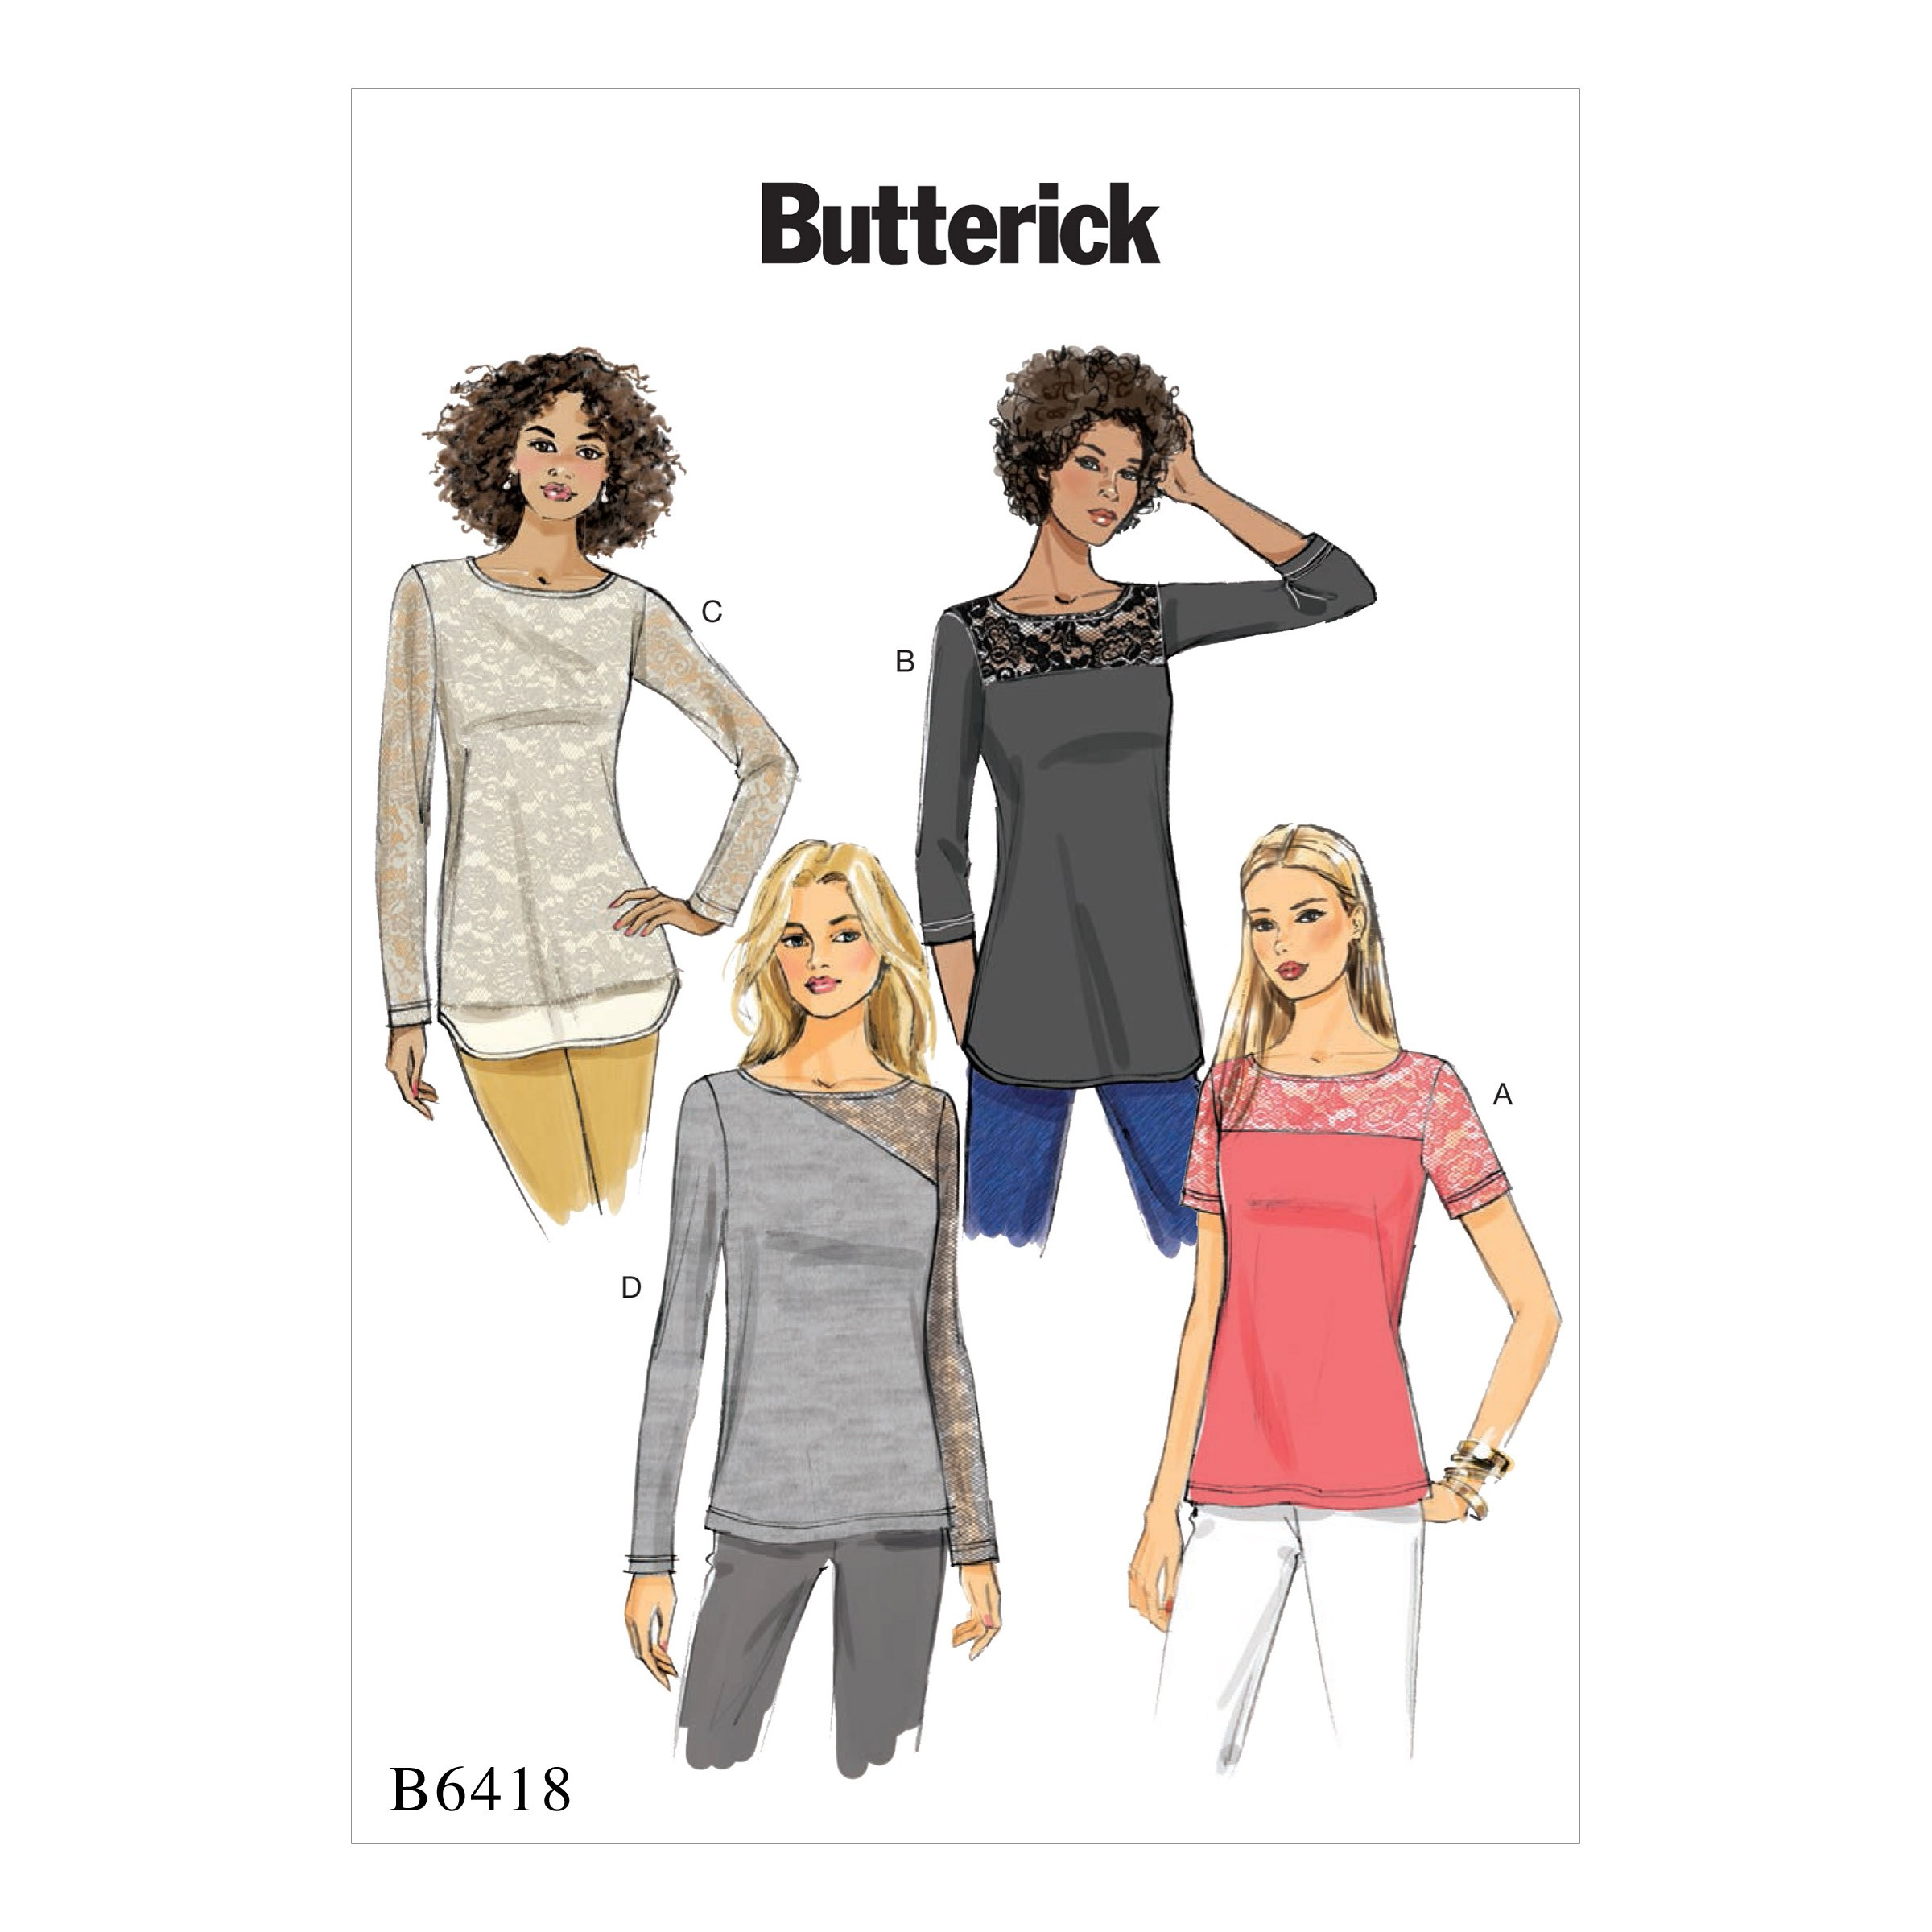 Butterick Sewing Pattern 6418 Misses' Knit Lace Detail Top